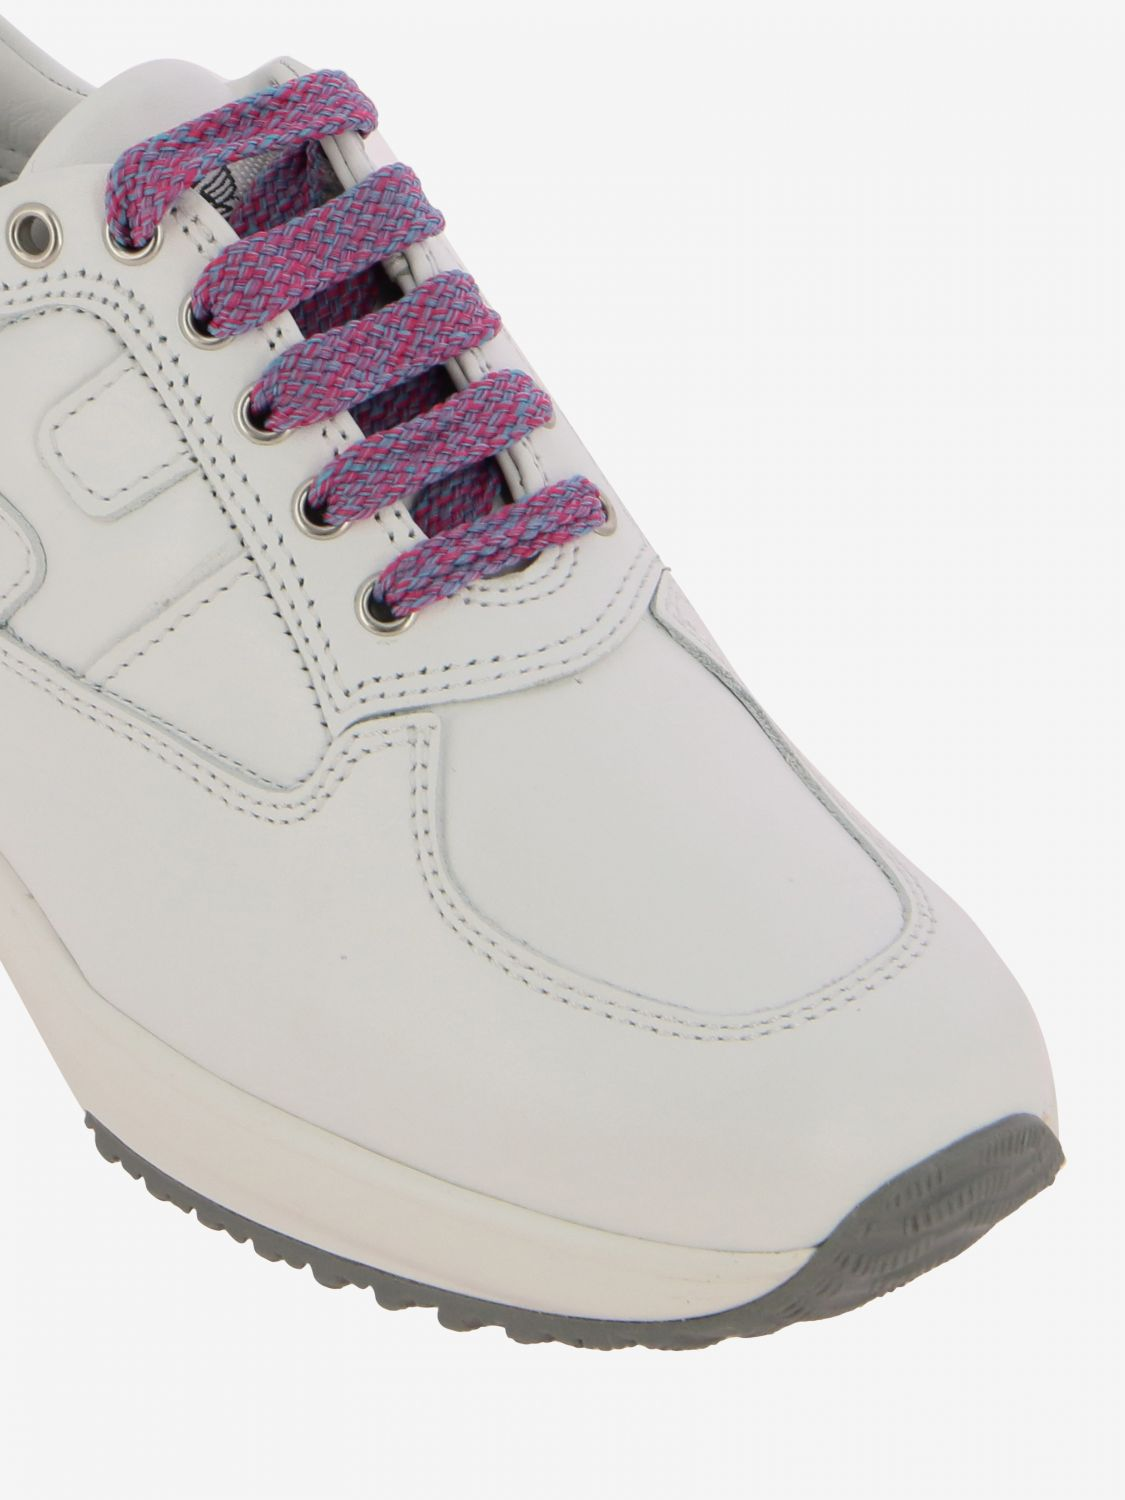 Shoes kids Hogan white 4